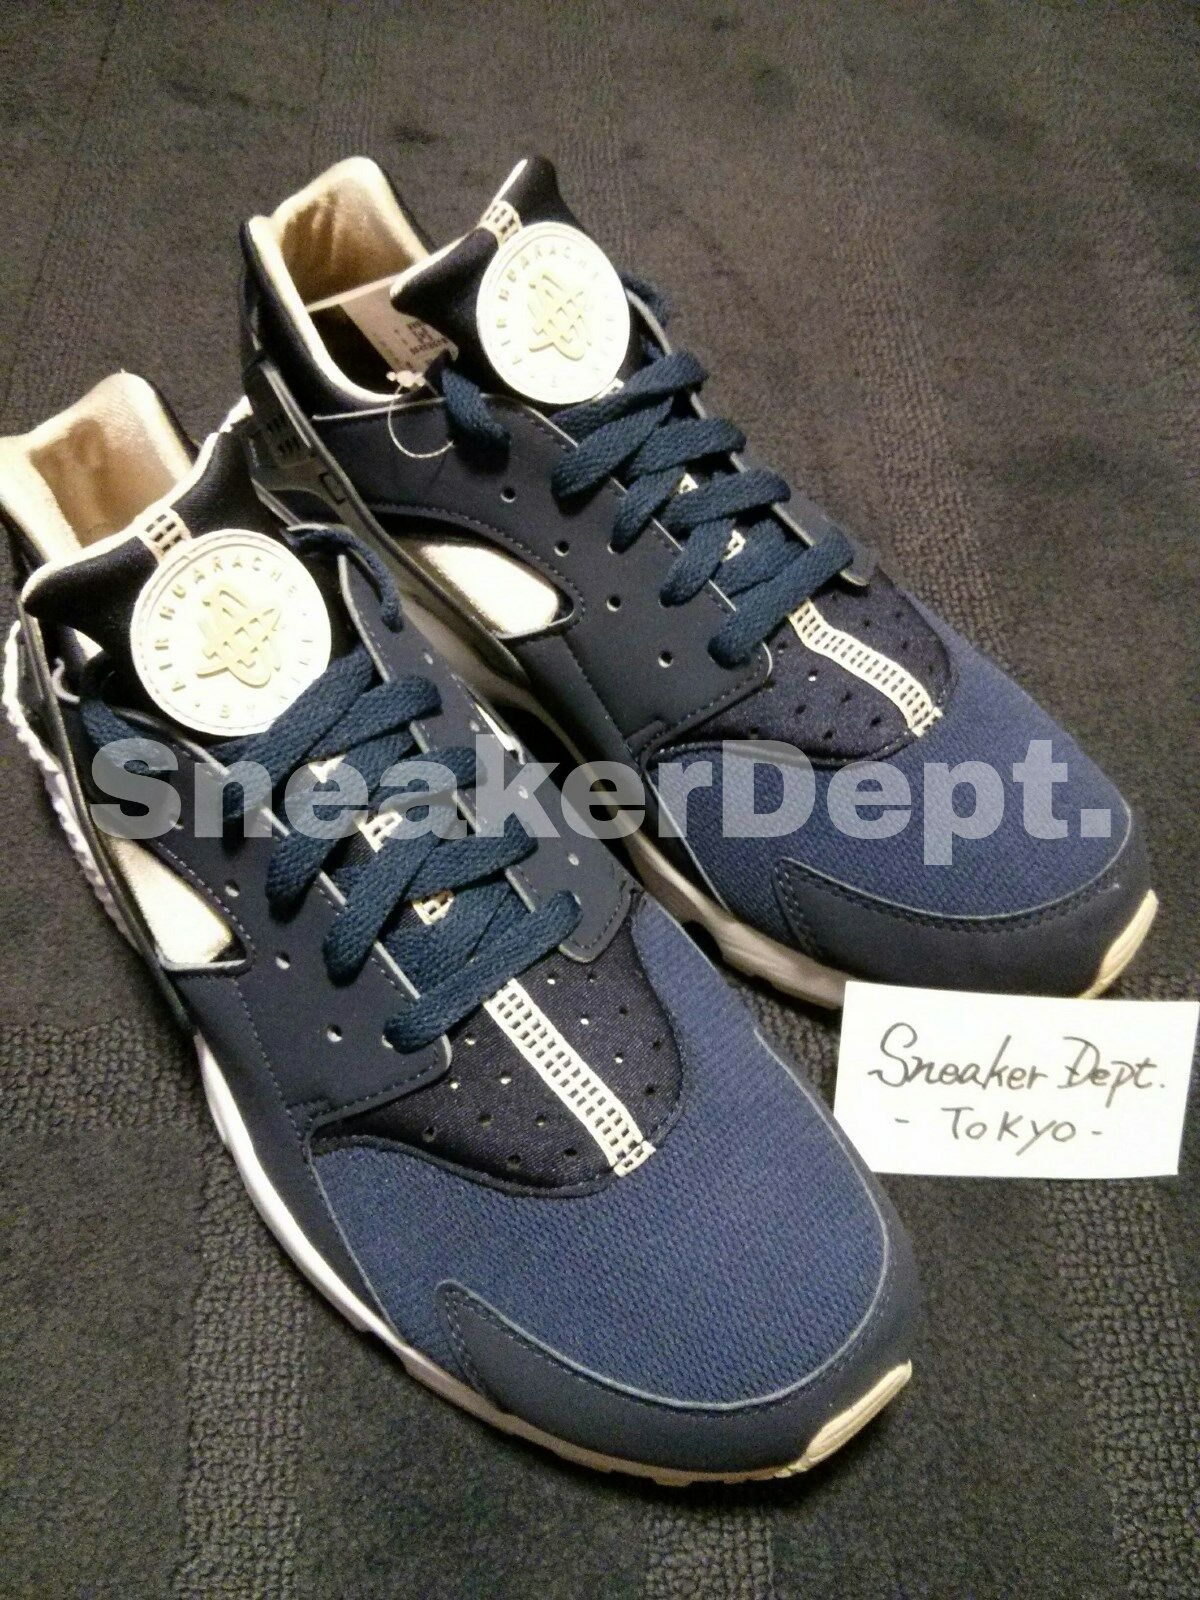 DS 2015 2015 2015 NIKE AIR HUARACHE 318429-410 huarache nsw qs Navy US12 406576